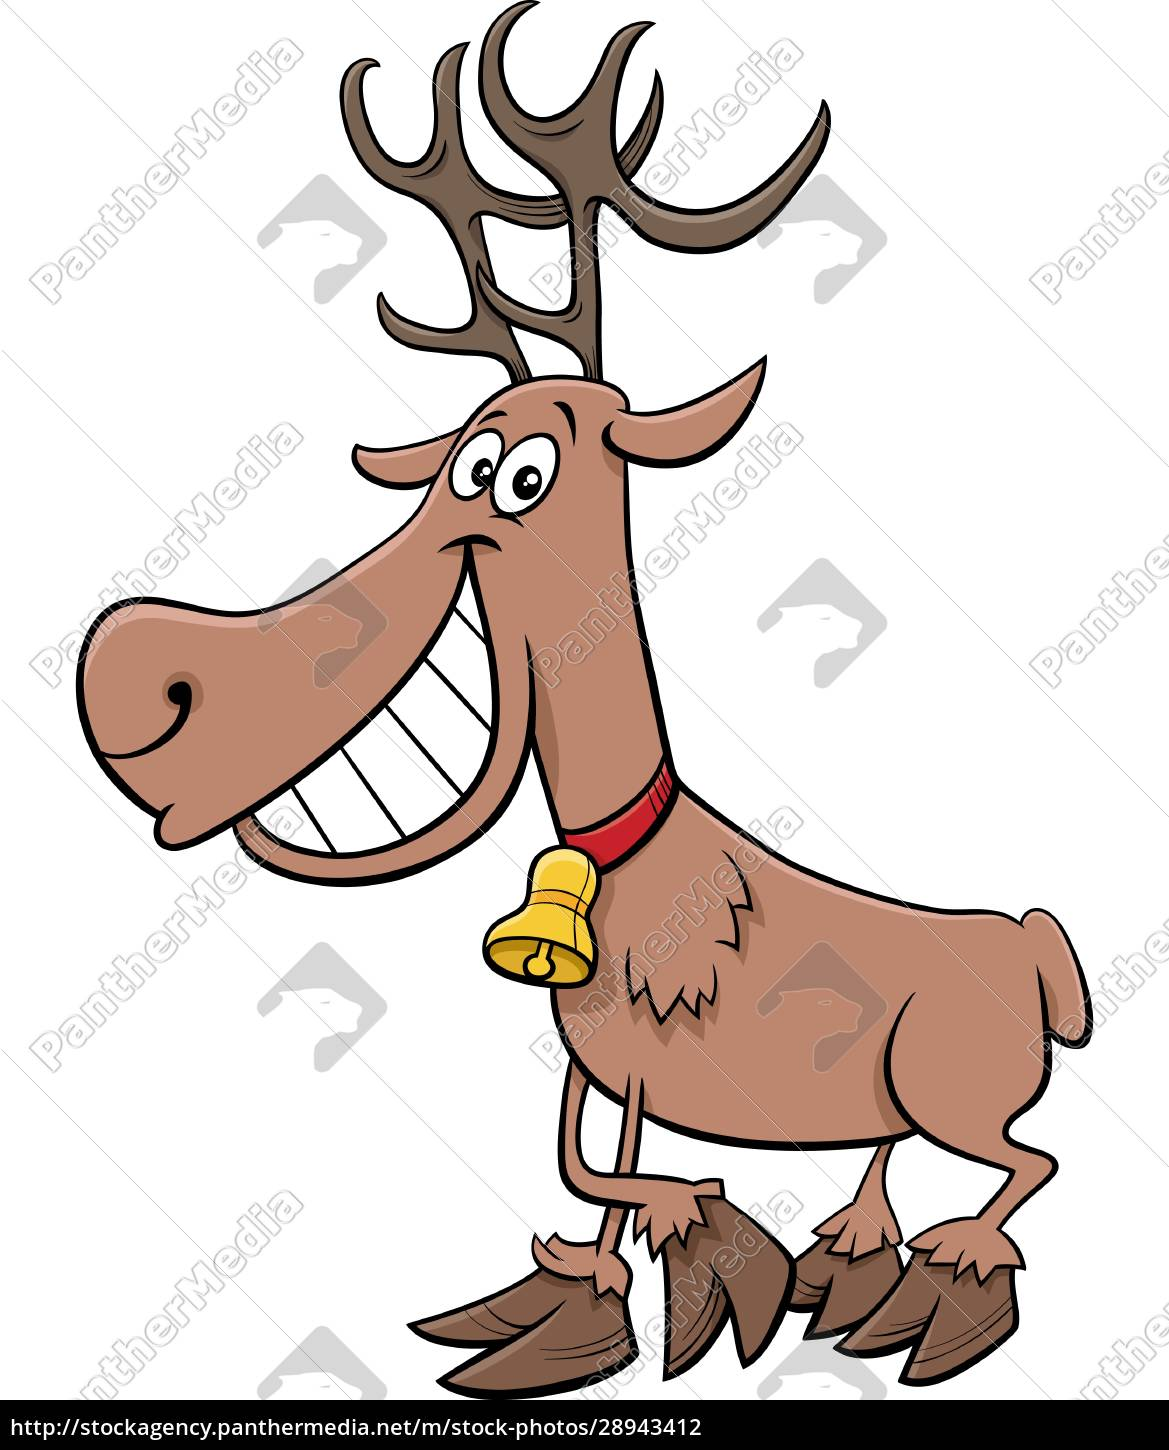 cartoon, reindeer, christmas, holiday, character - 28943412